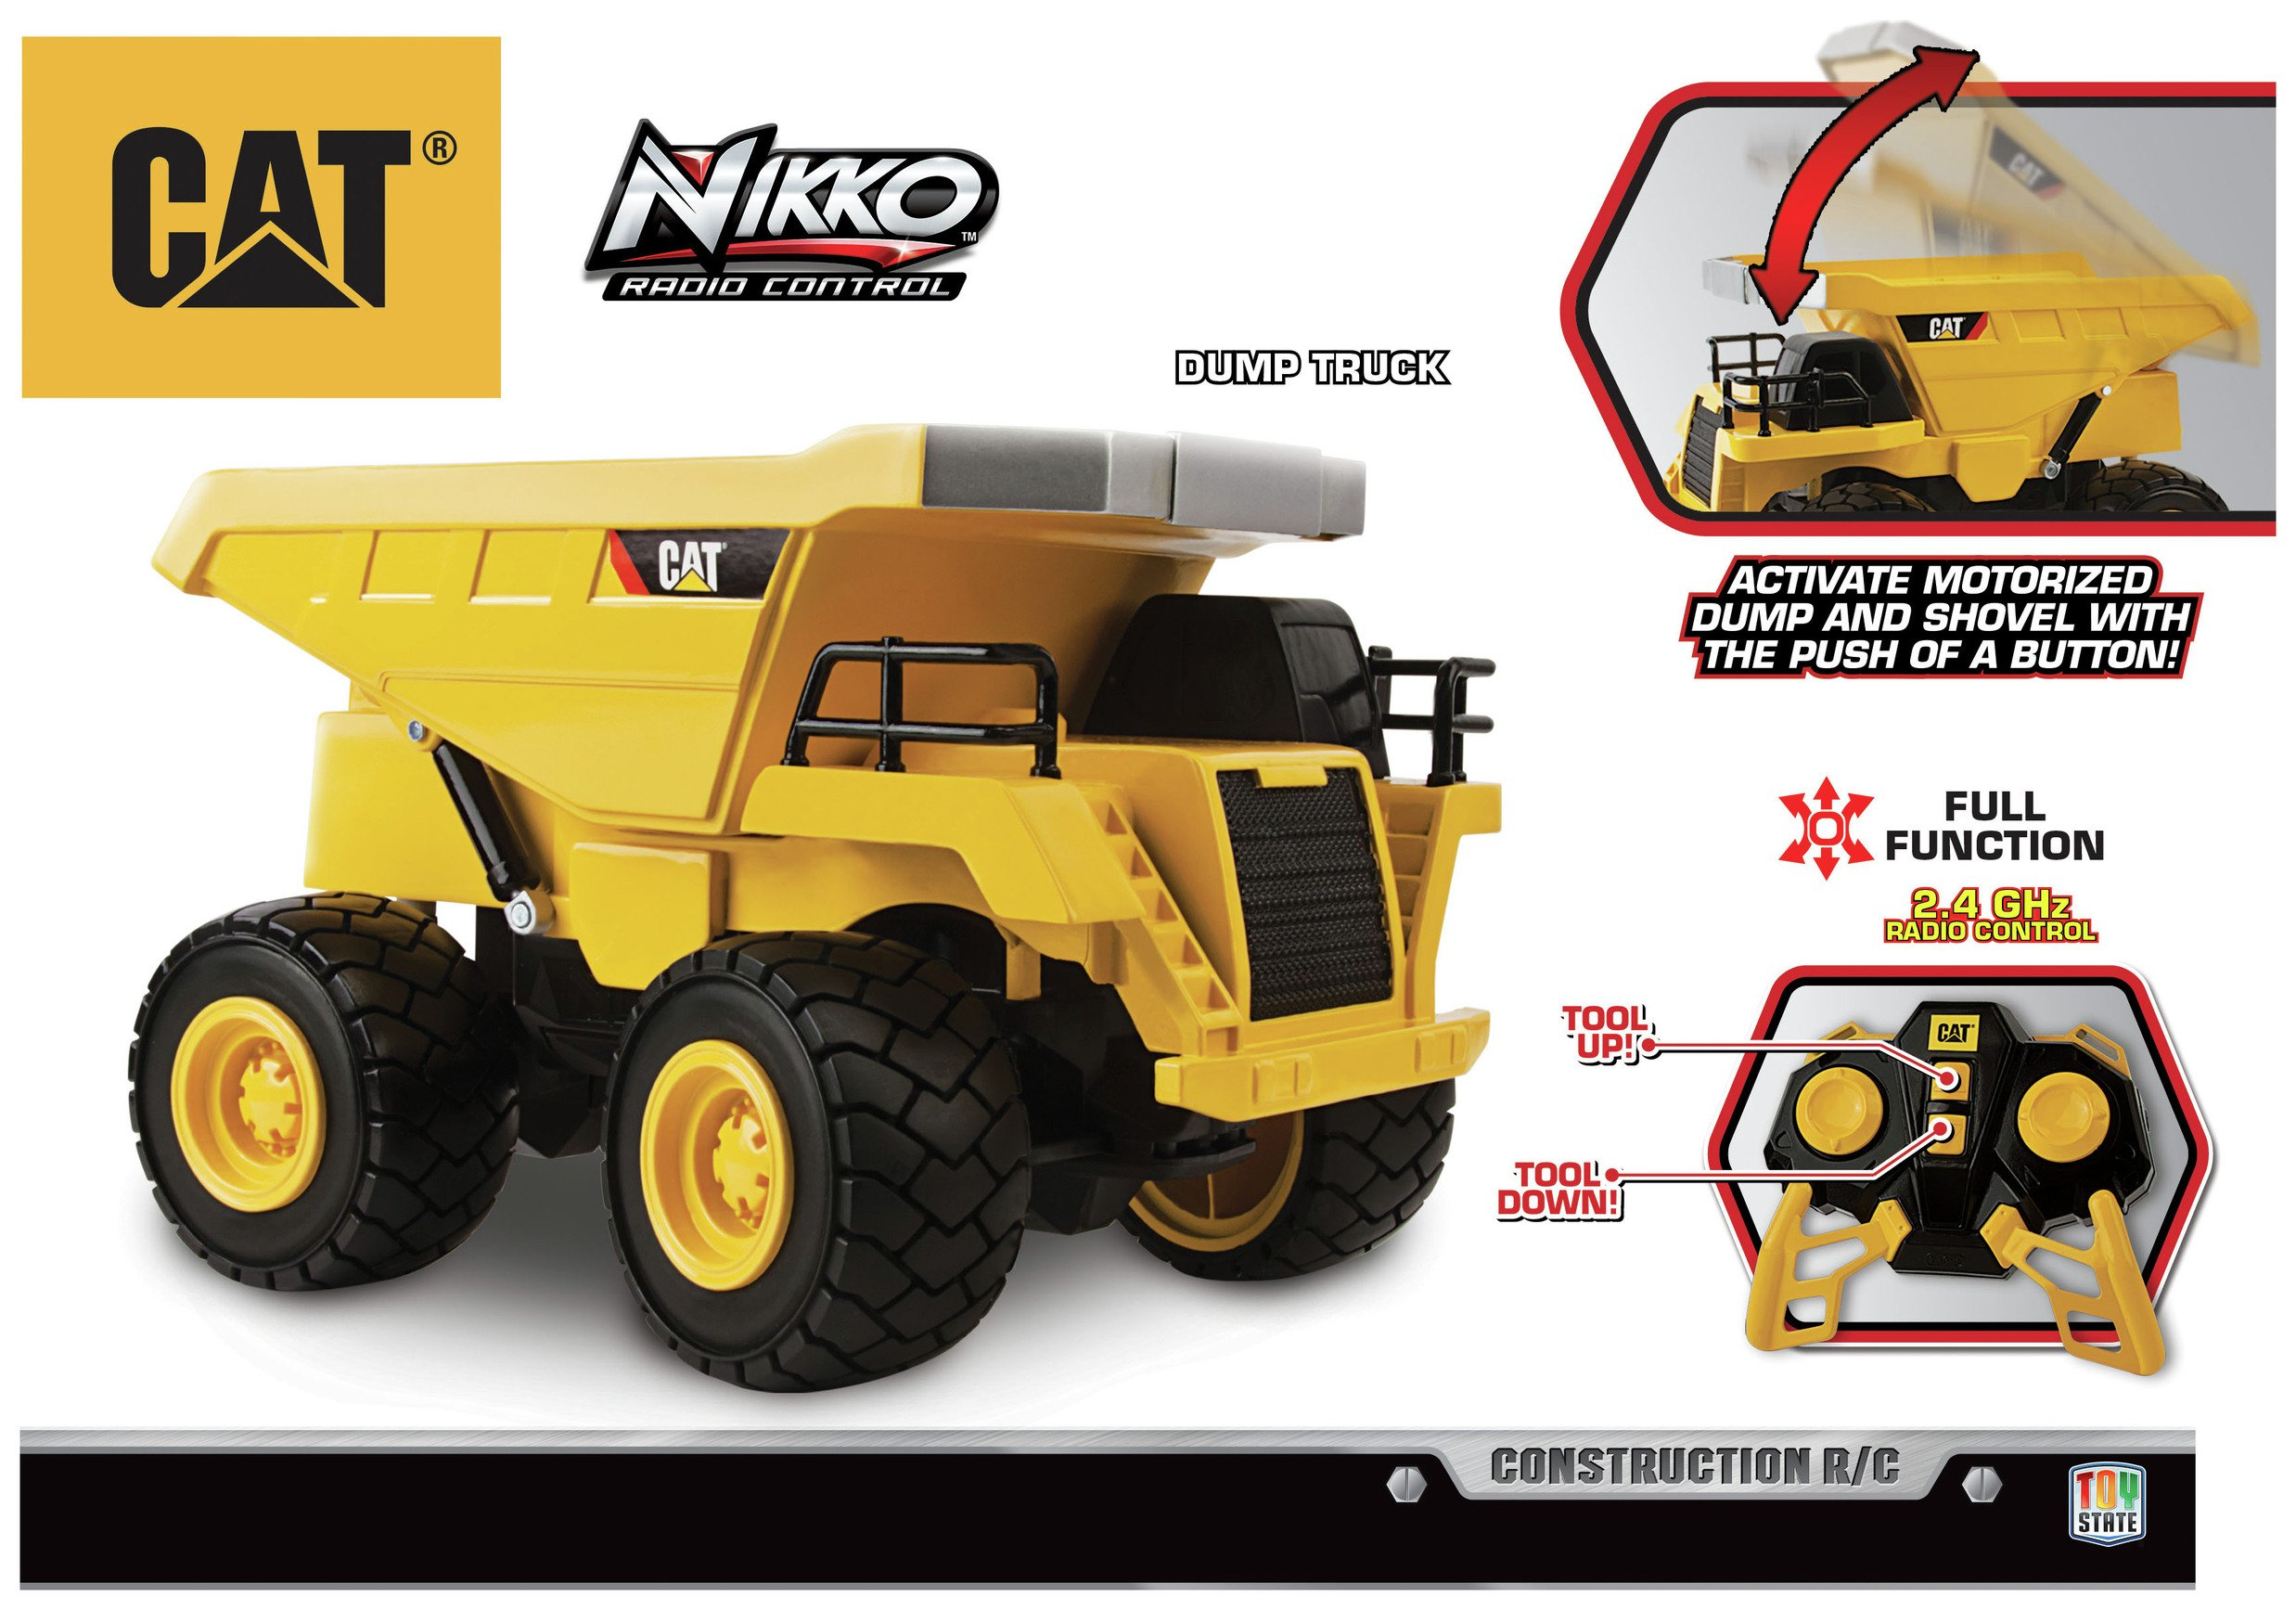 Image of CAT RC Dump Truck.